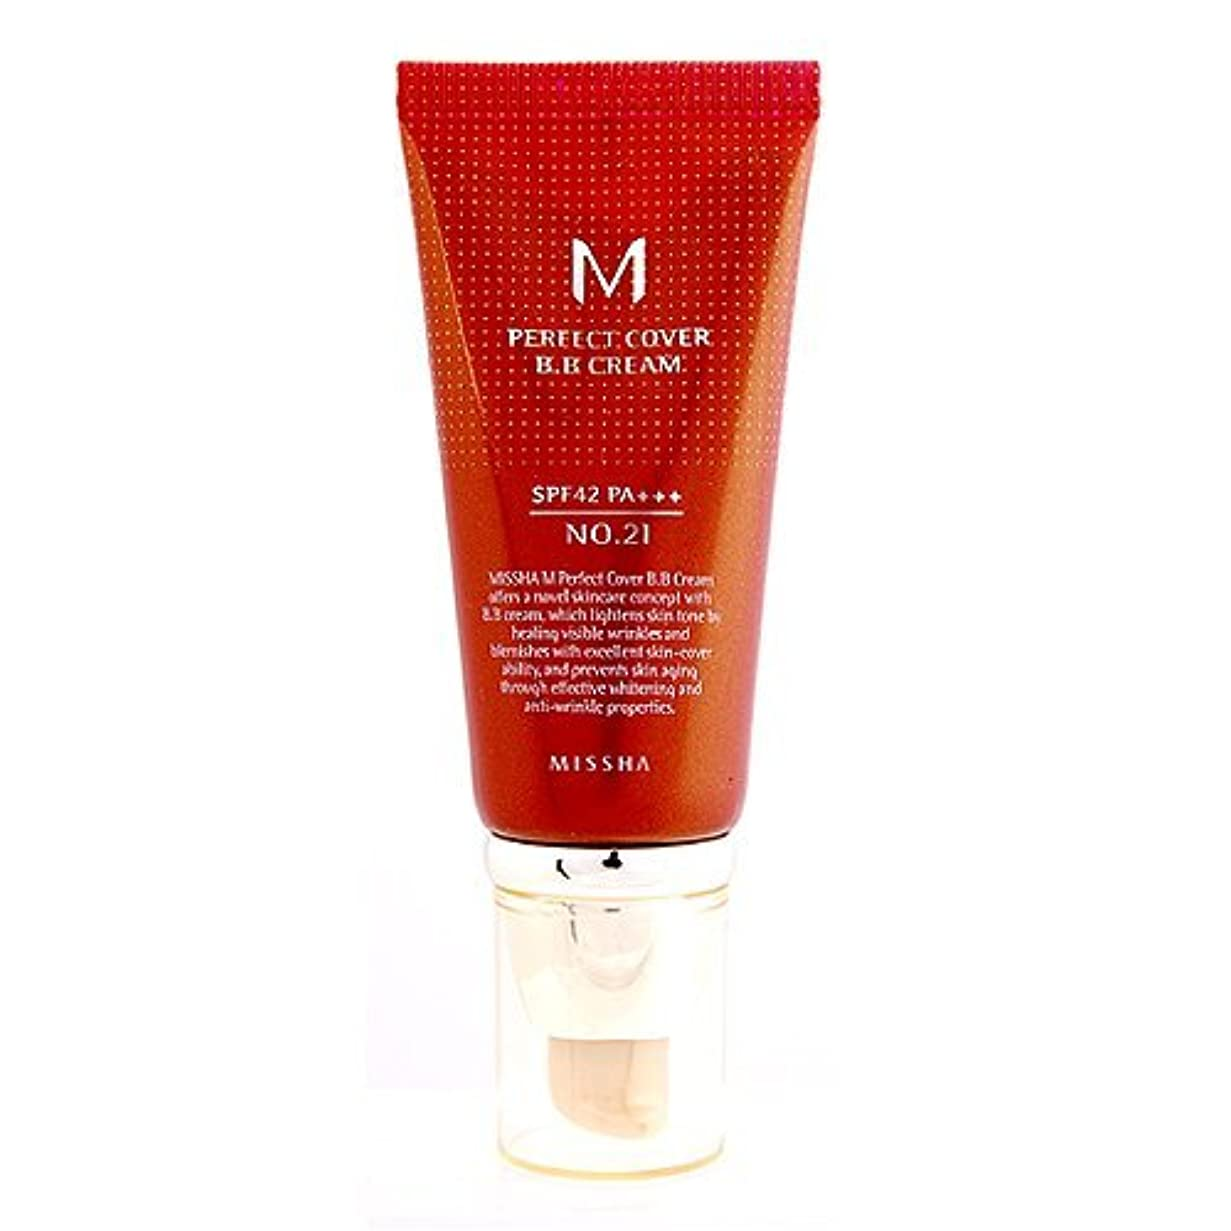 ダーリン遵守する招待Missha M Perfect Cover B.B. Cream SPF 42 PA+++ 21 Light Beige, 1.69oz, 50ml